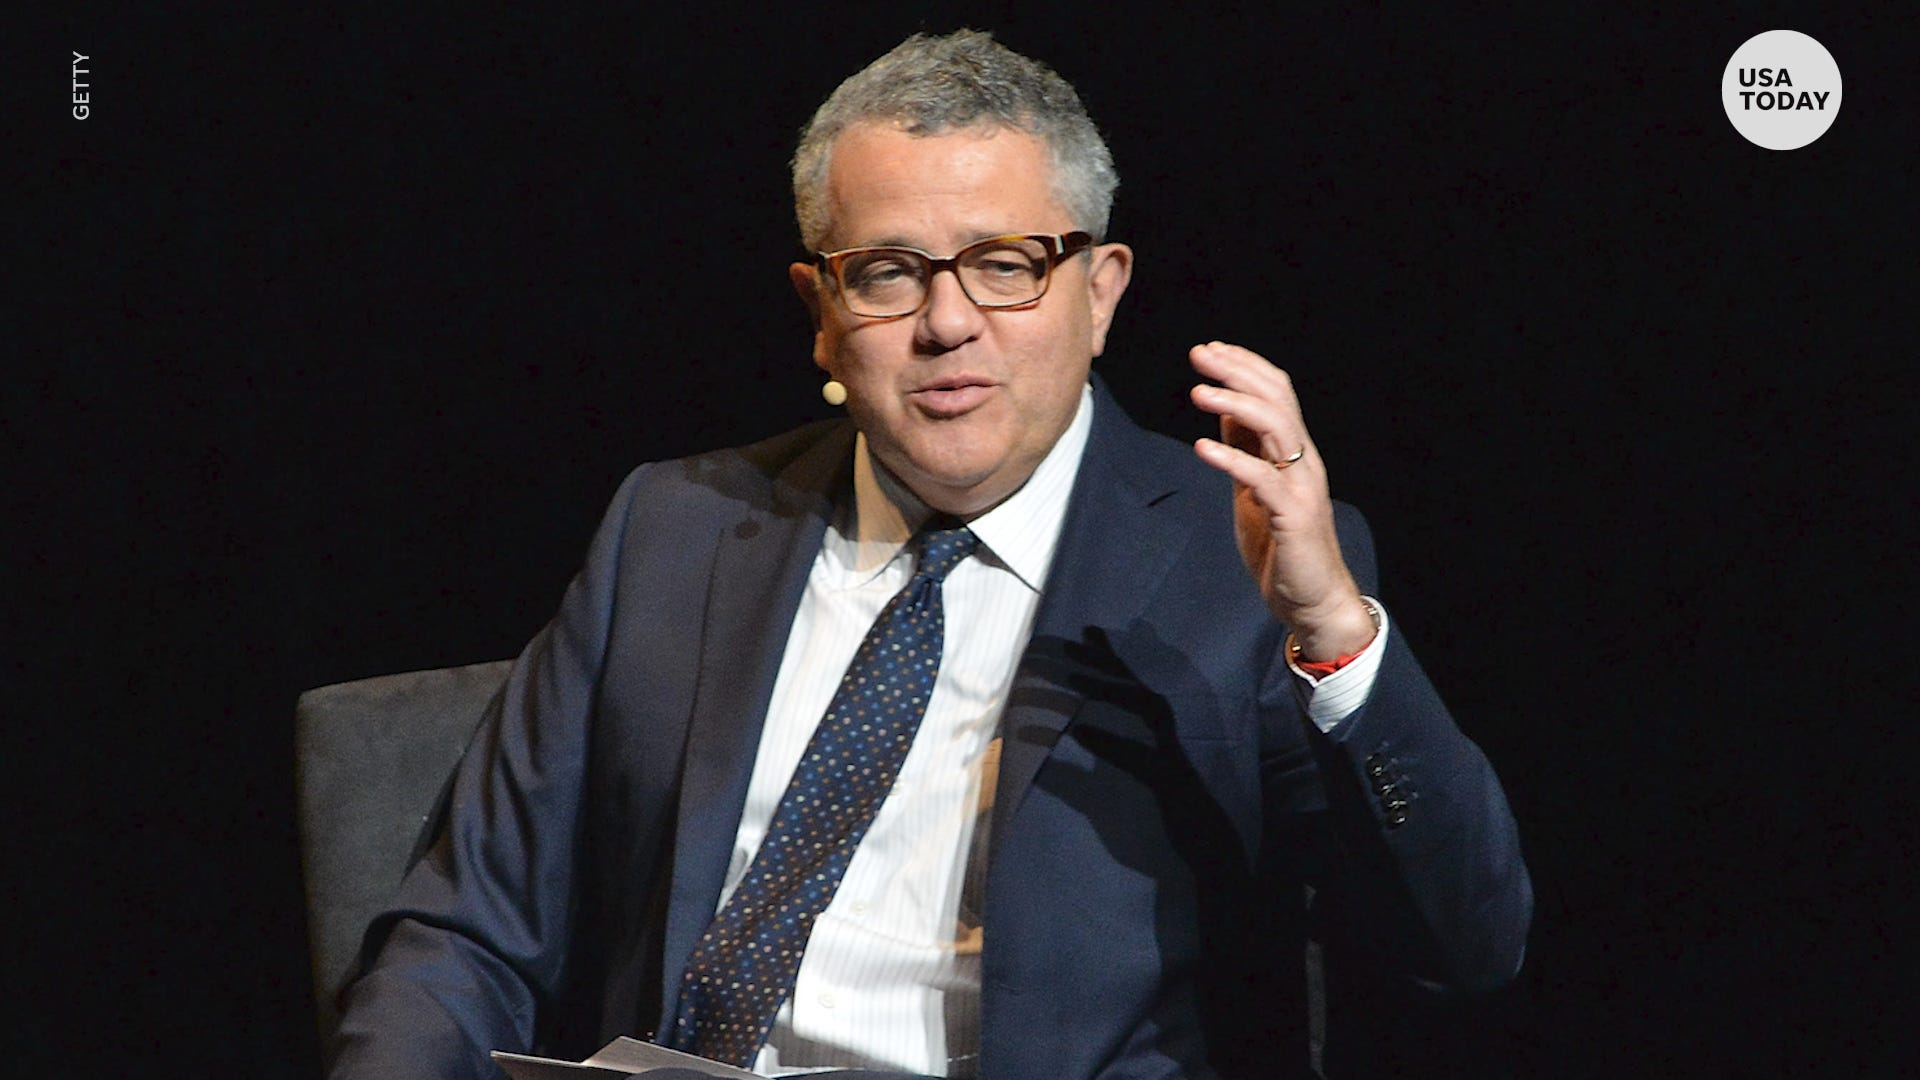 Jeffrey Toobin has been suspended from the New Yorker while nude Zoom call is investigated